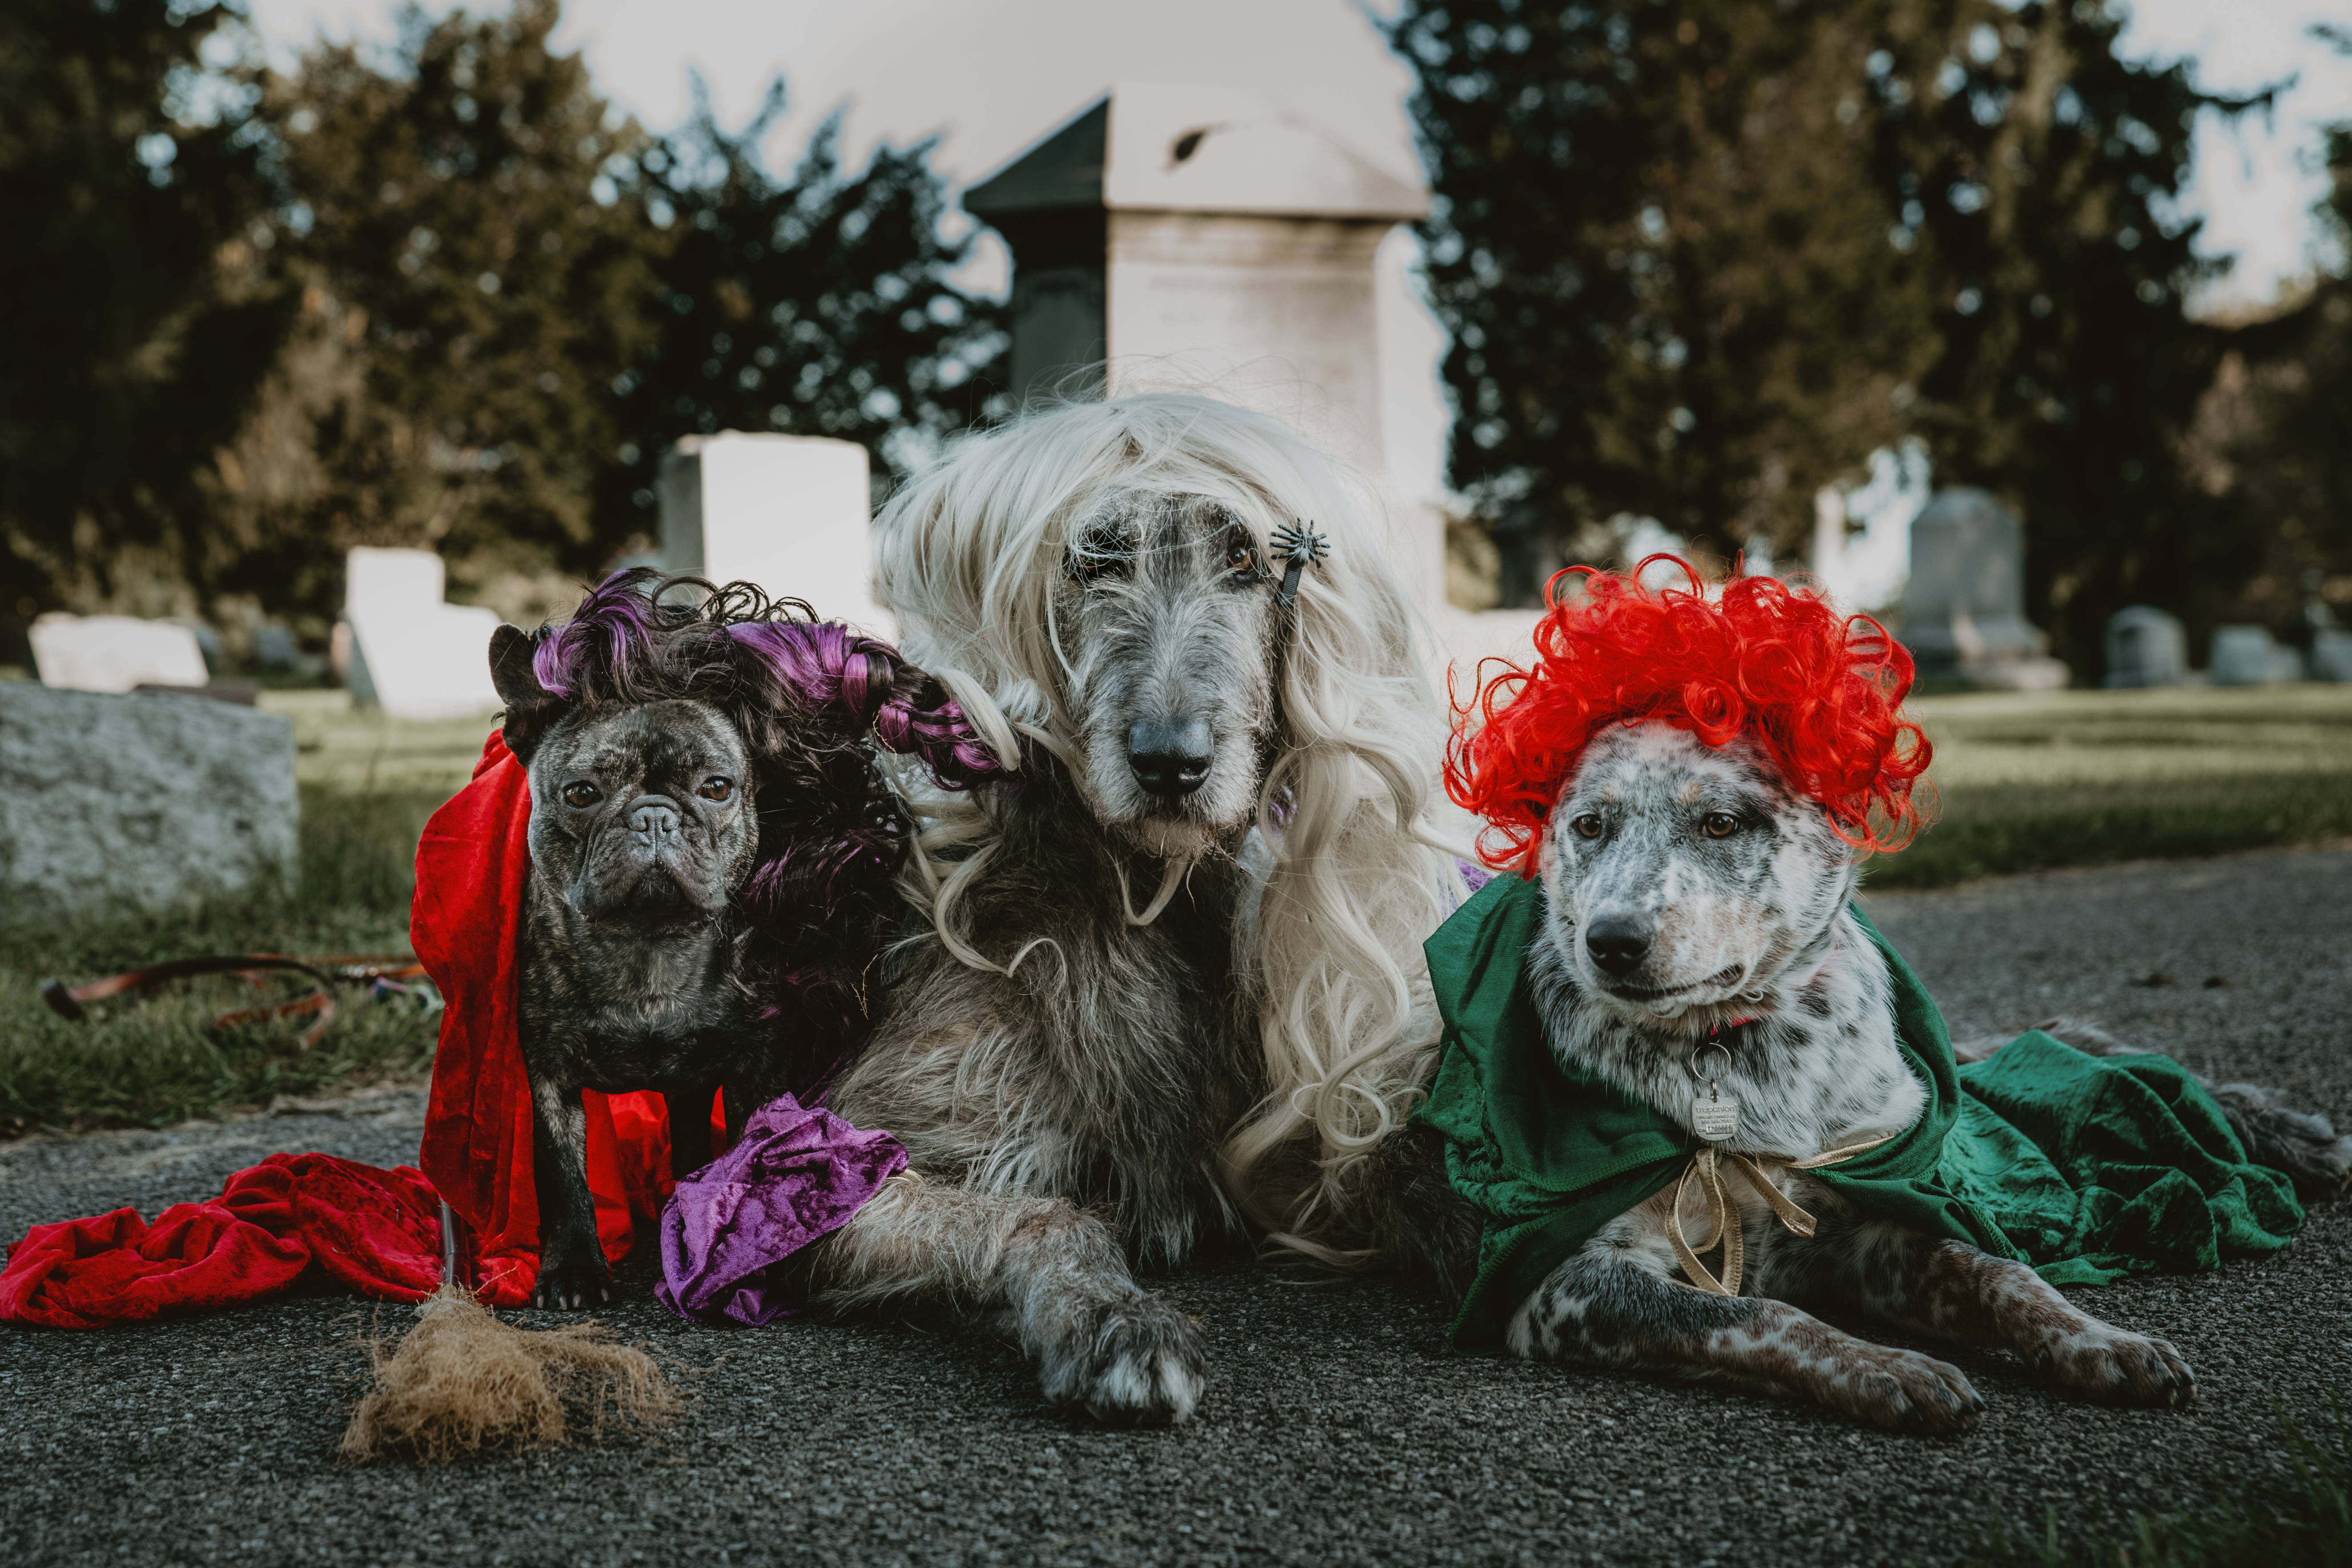 Local photographer gives dogs their own 'Hocus Pocus' photo shoot and the results are amazing